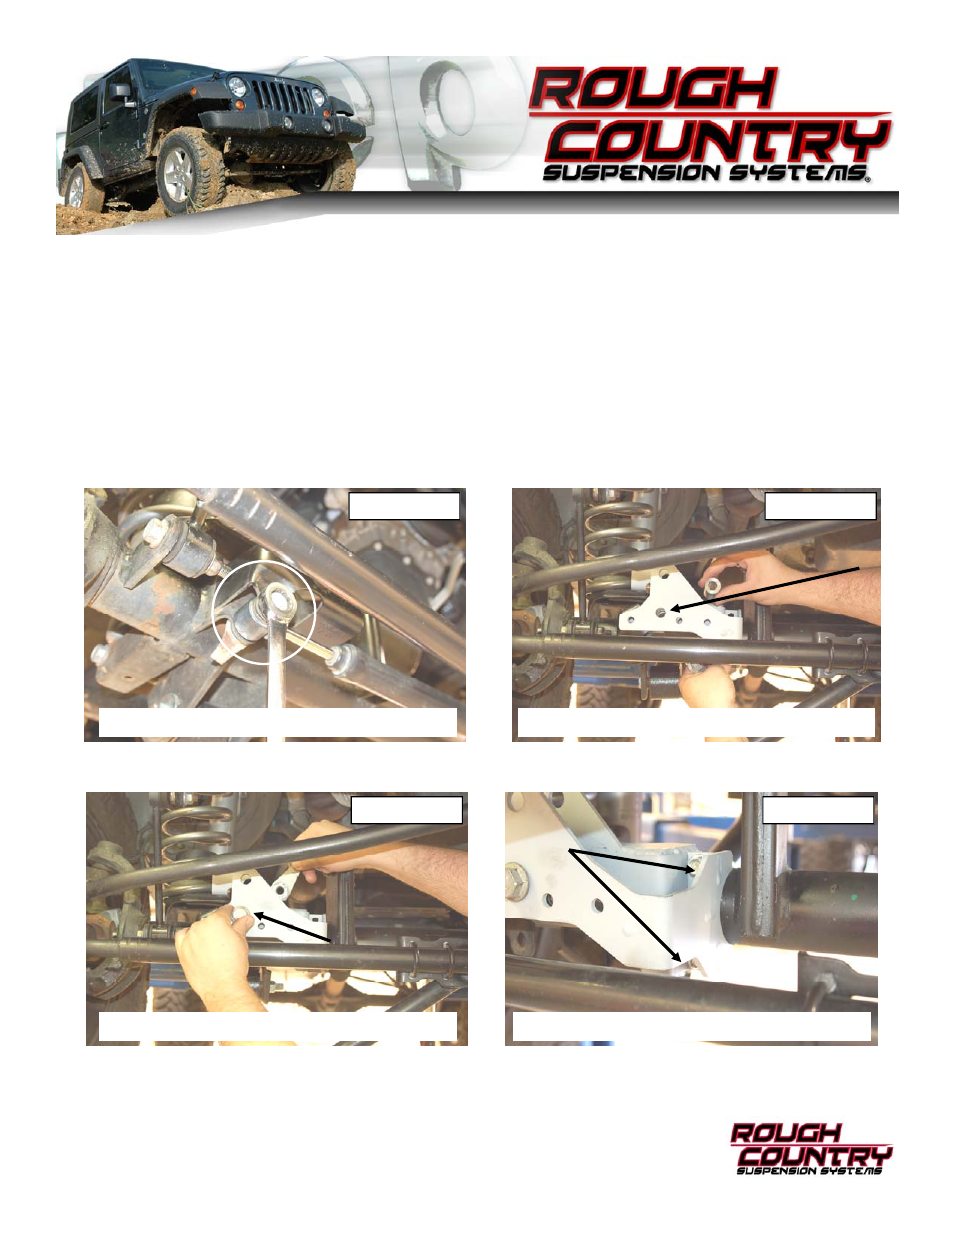 Rough Country 1118 User Manual | 2 pages